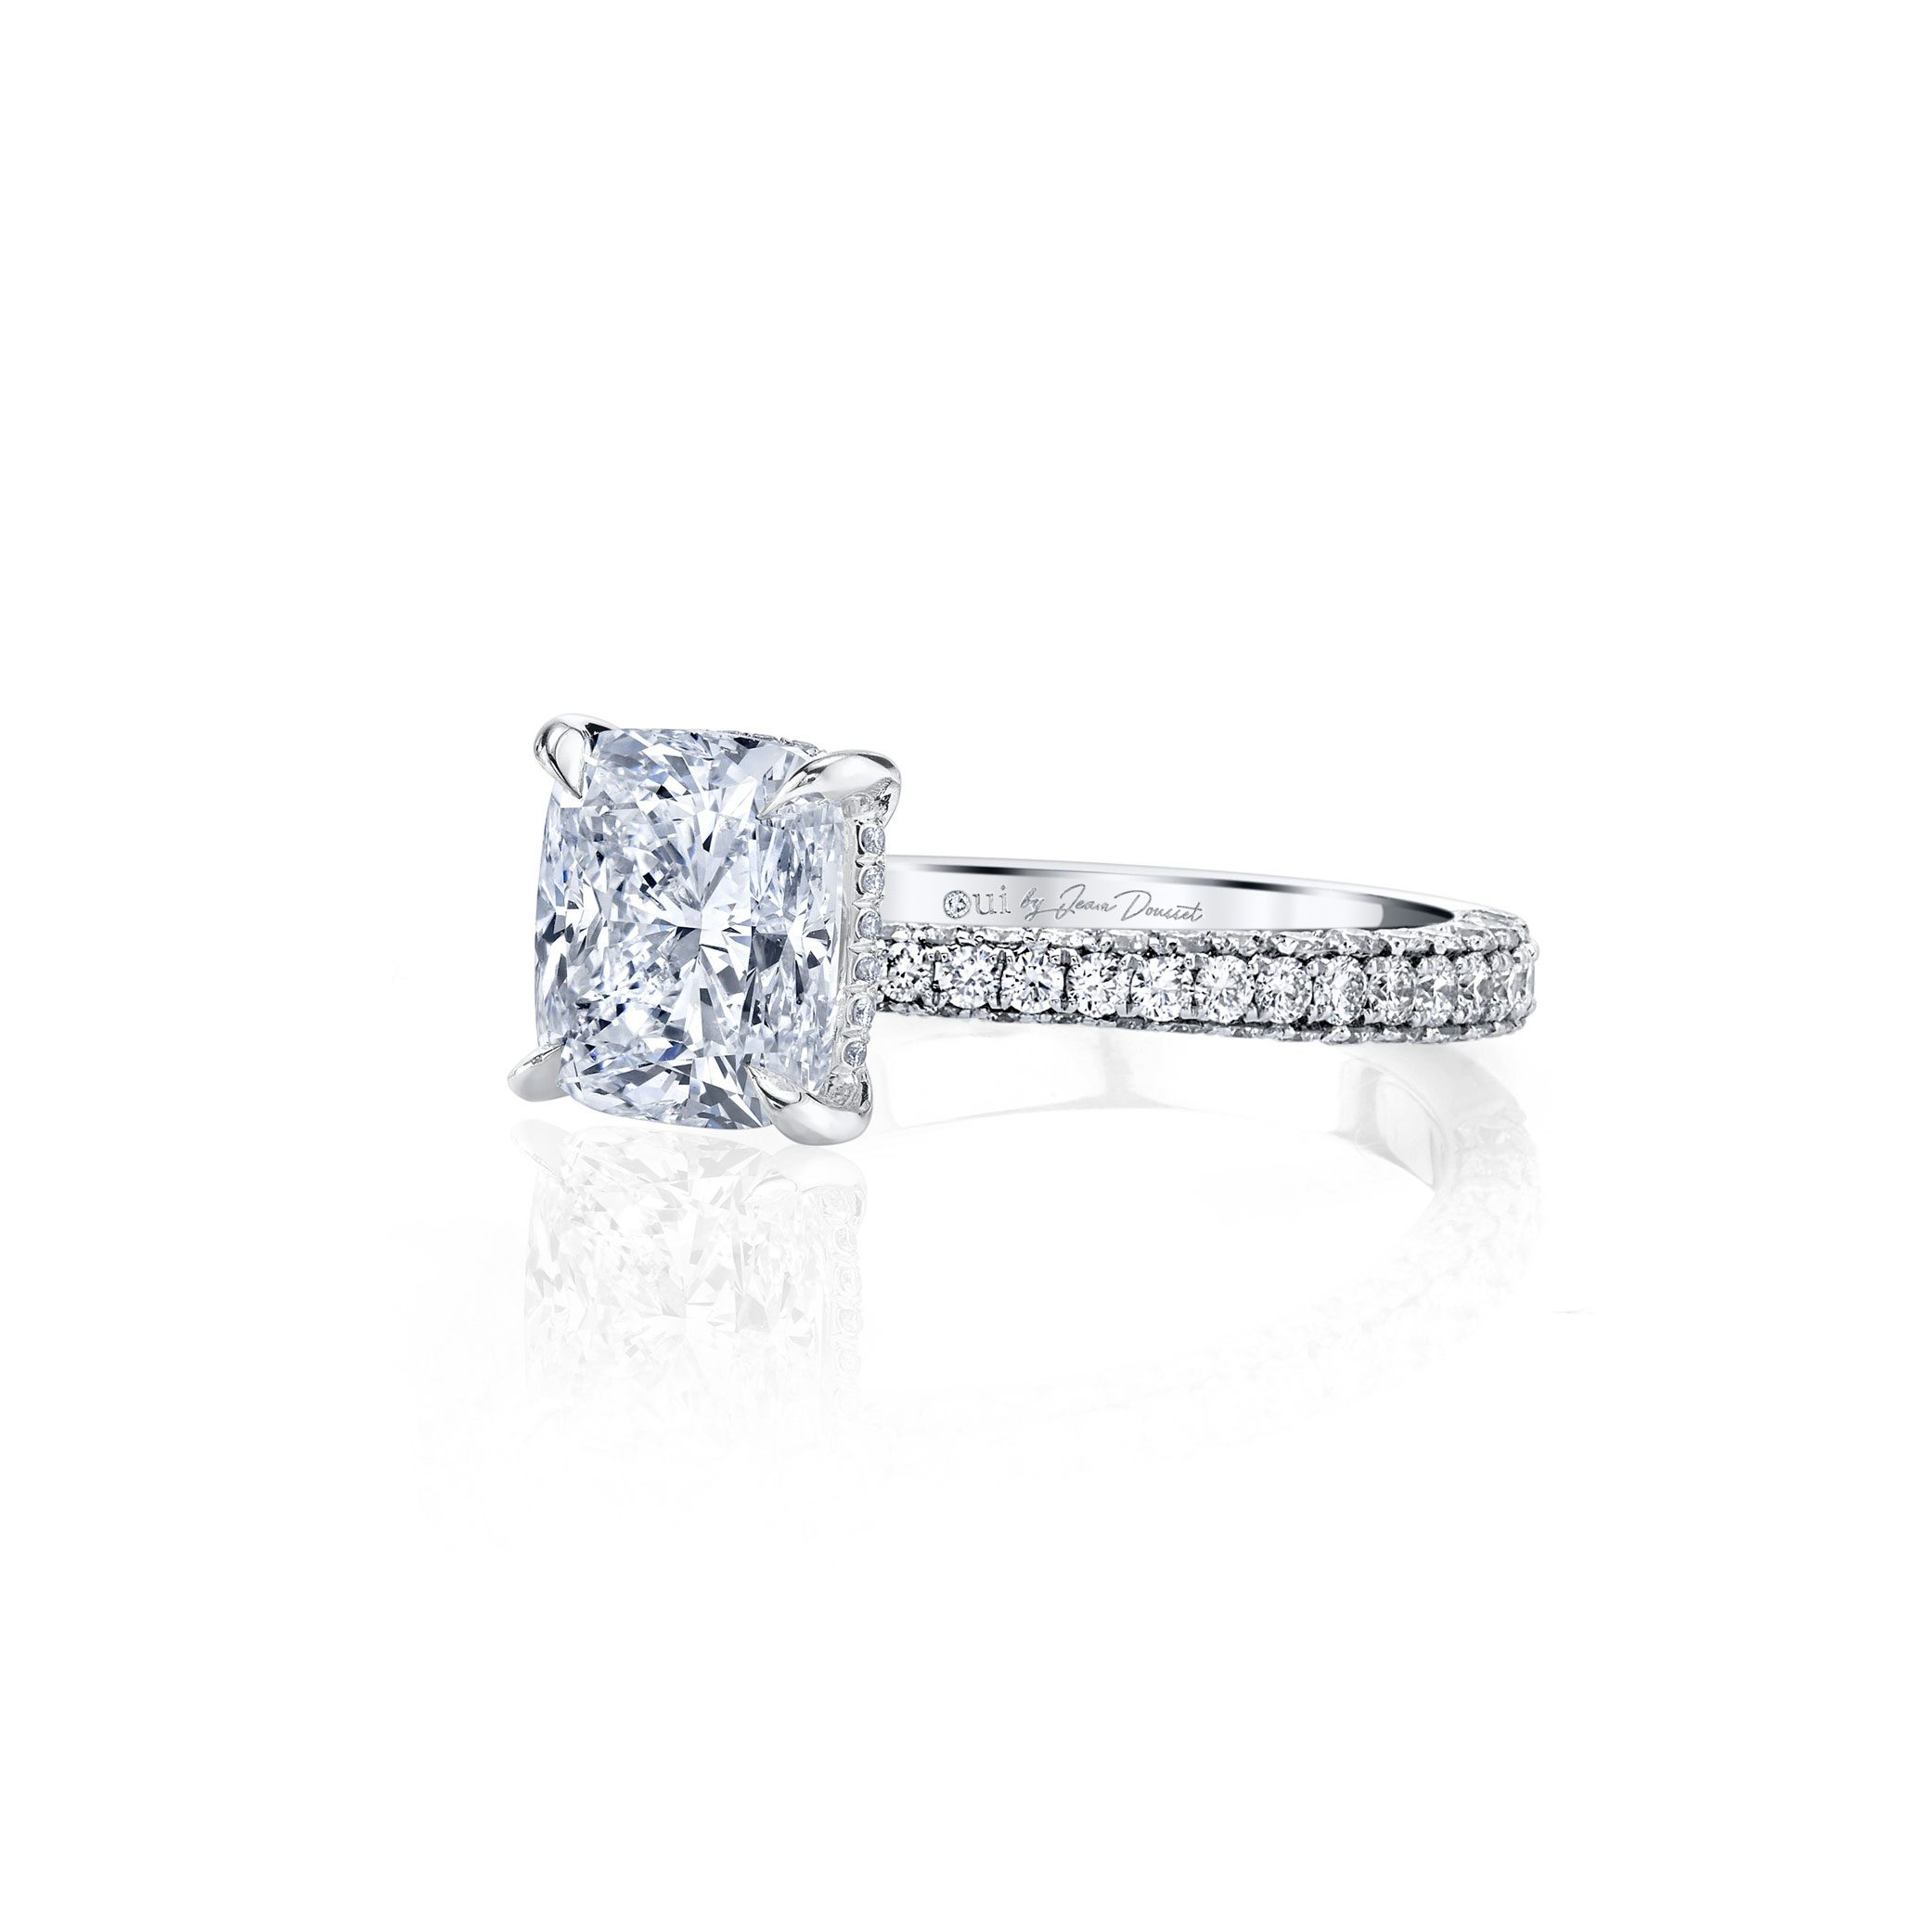 Jacqueline Cushion Cut Lab Grown Diamond Solitaire Engagement Ring Pavé White Gold Band from Oui